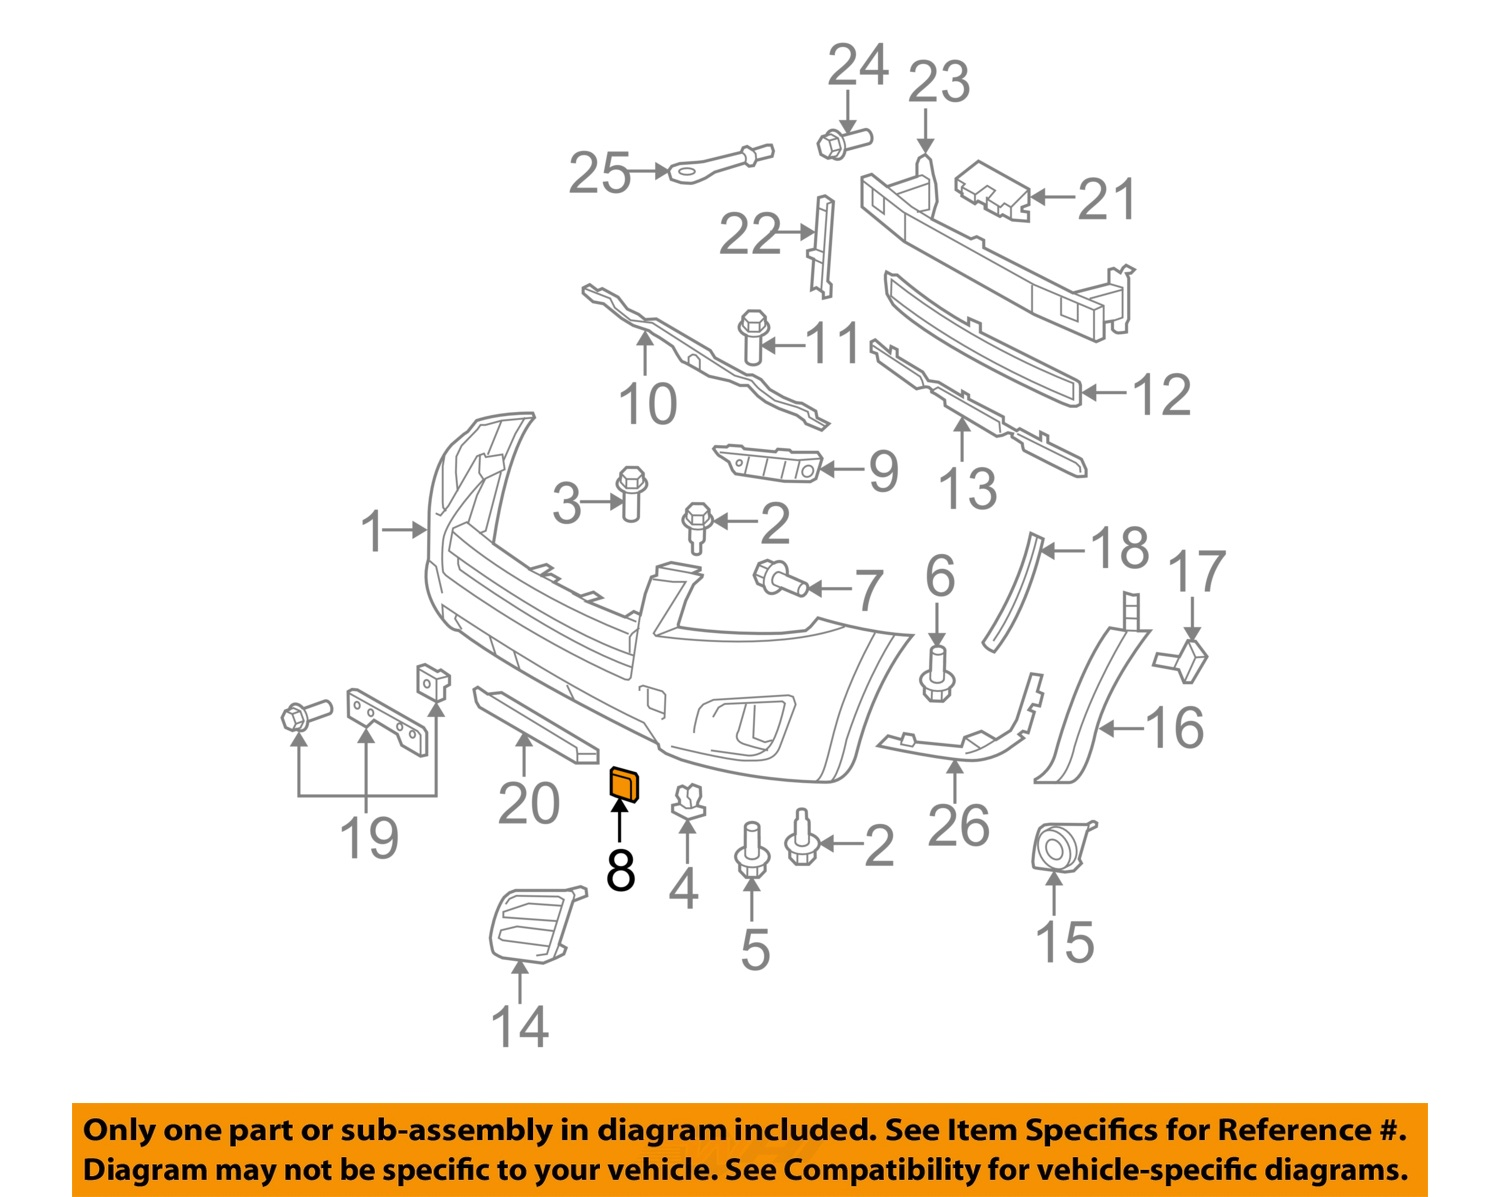 Toyota oem 2012 rav4 front bumper tow hook eye cover cap right 8 on diagram only genuine oe factory original item pooptronica